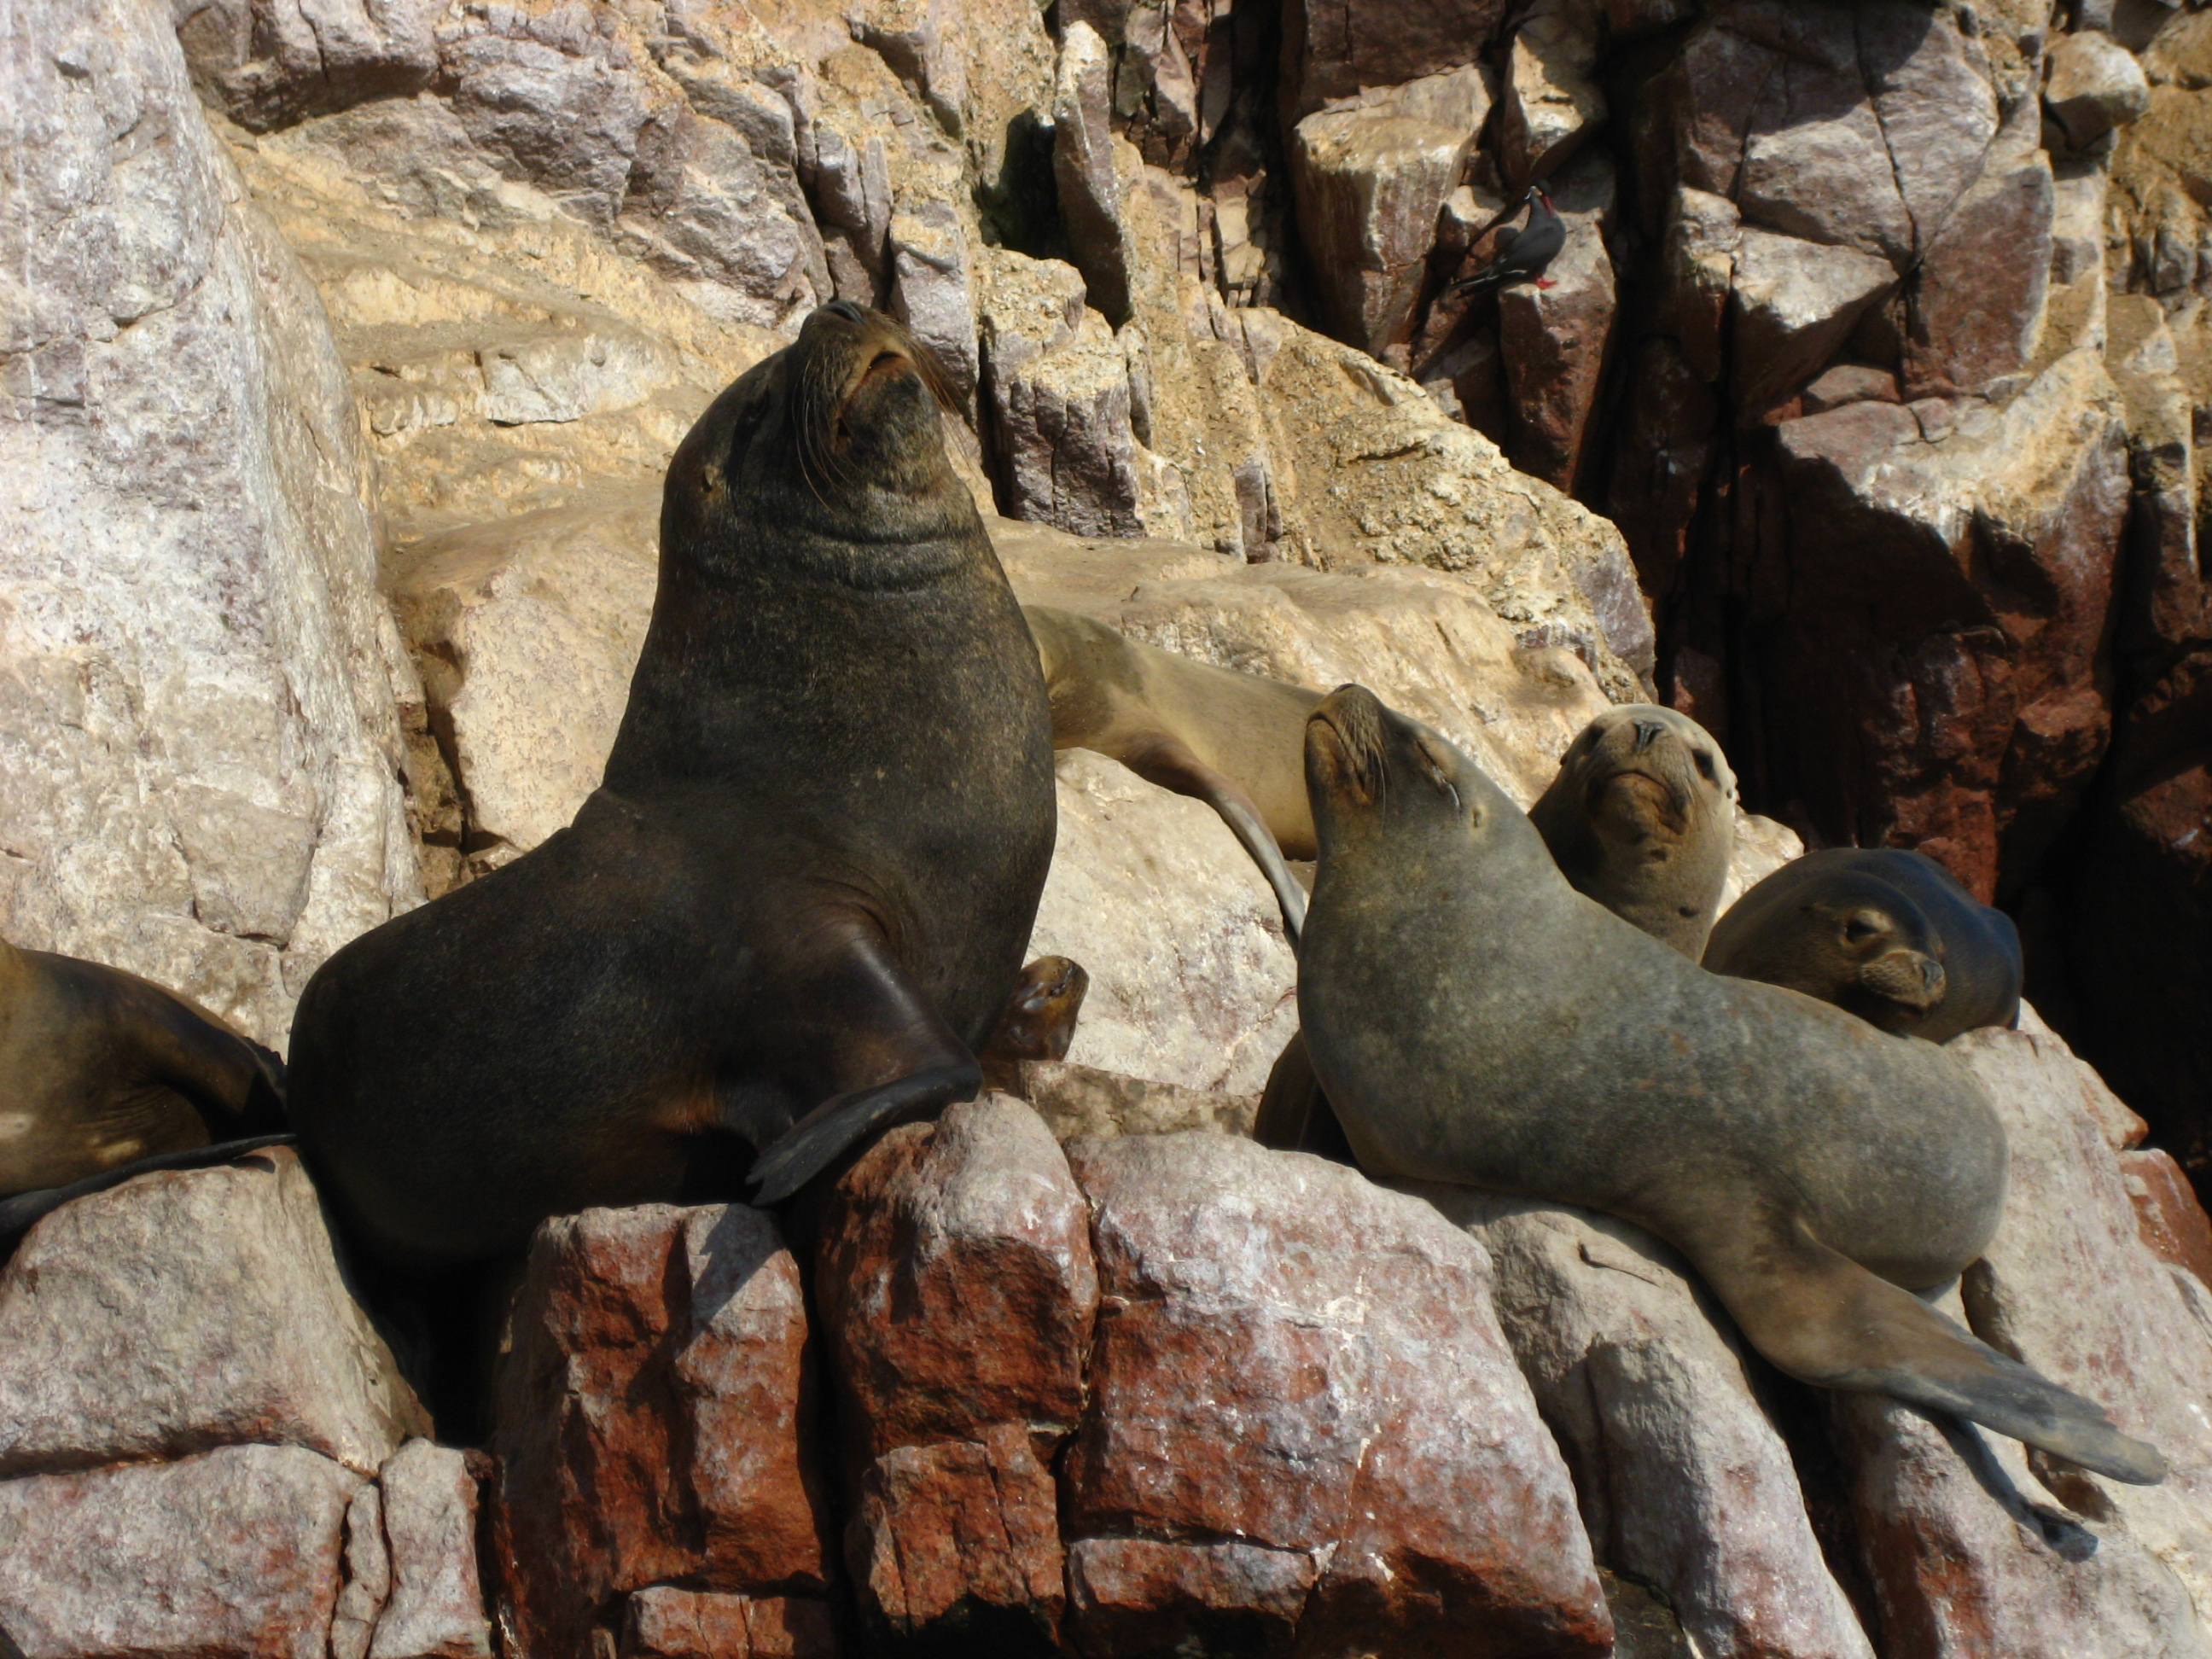 Sea Lions basking in the sun on the Islas Ballestas off the coast of Pisco, Peru!